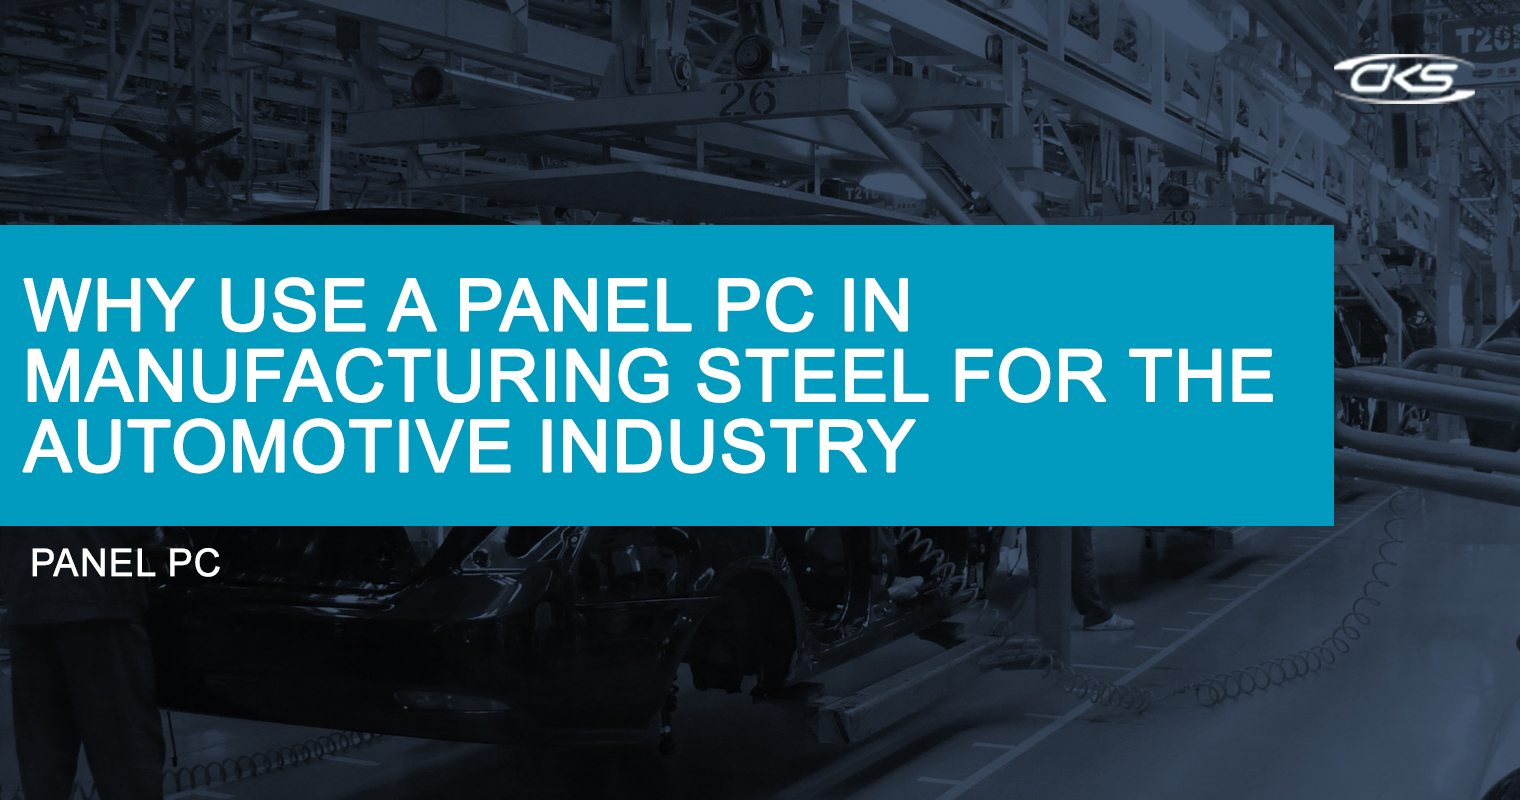 Utilising Panel PCs in Manufacturing Modern Steel for Automobiles